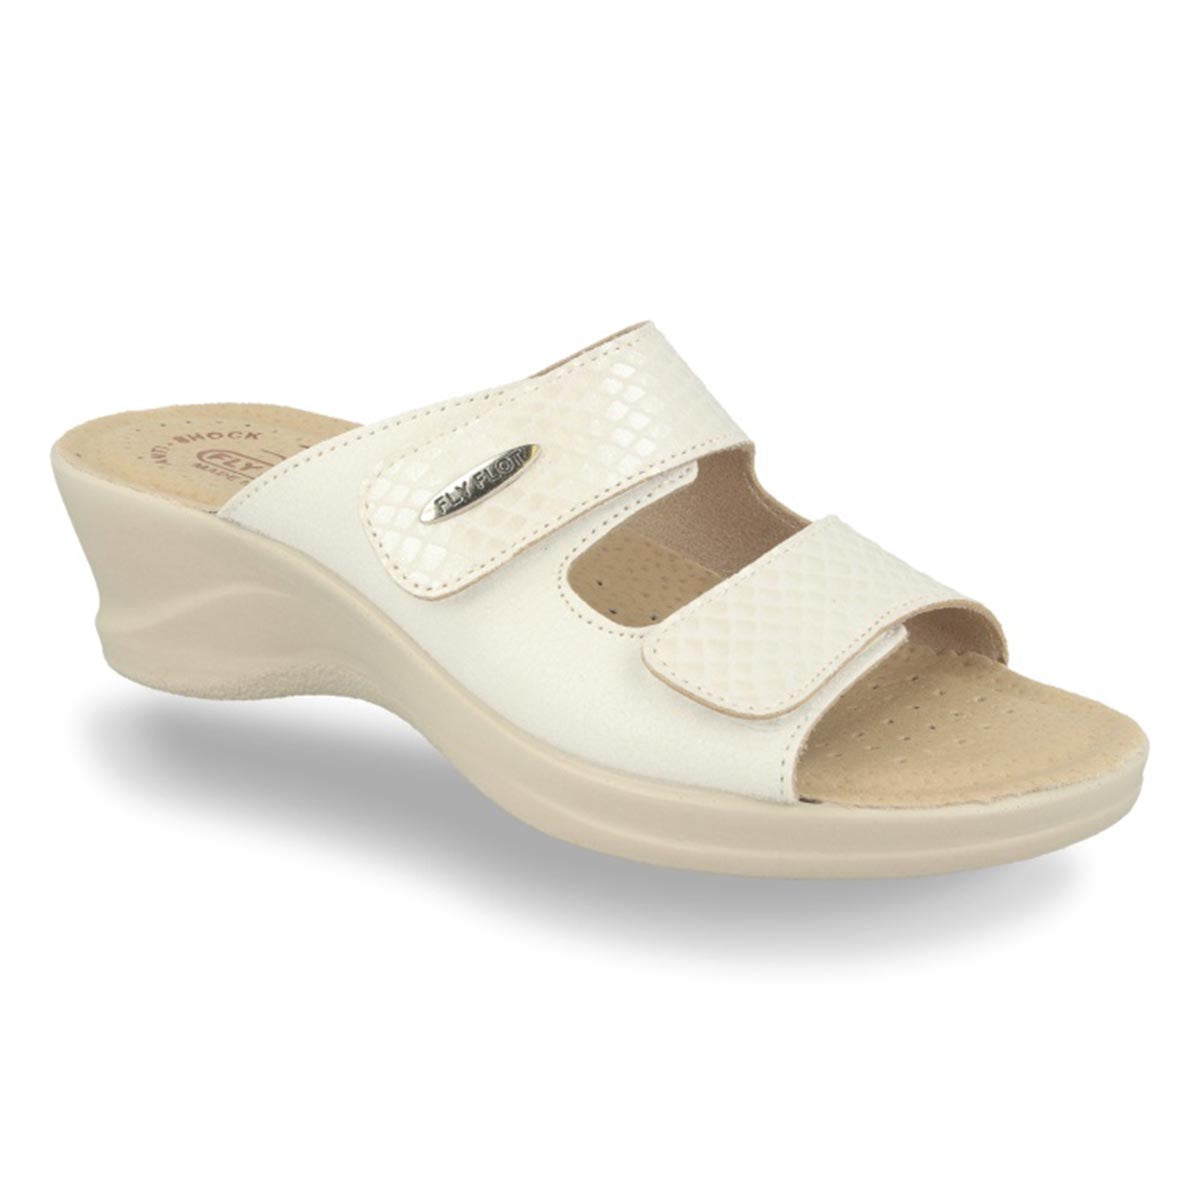 Cloth Woman Slipper White (96e28lb)